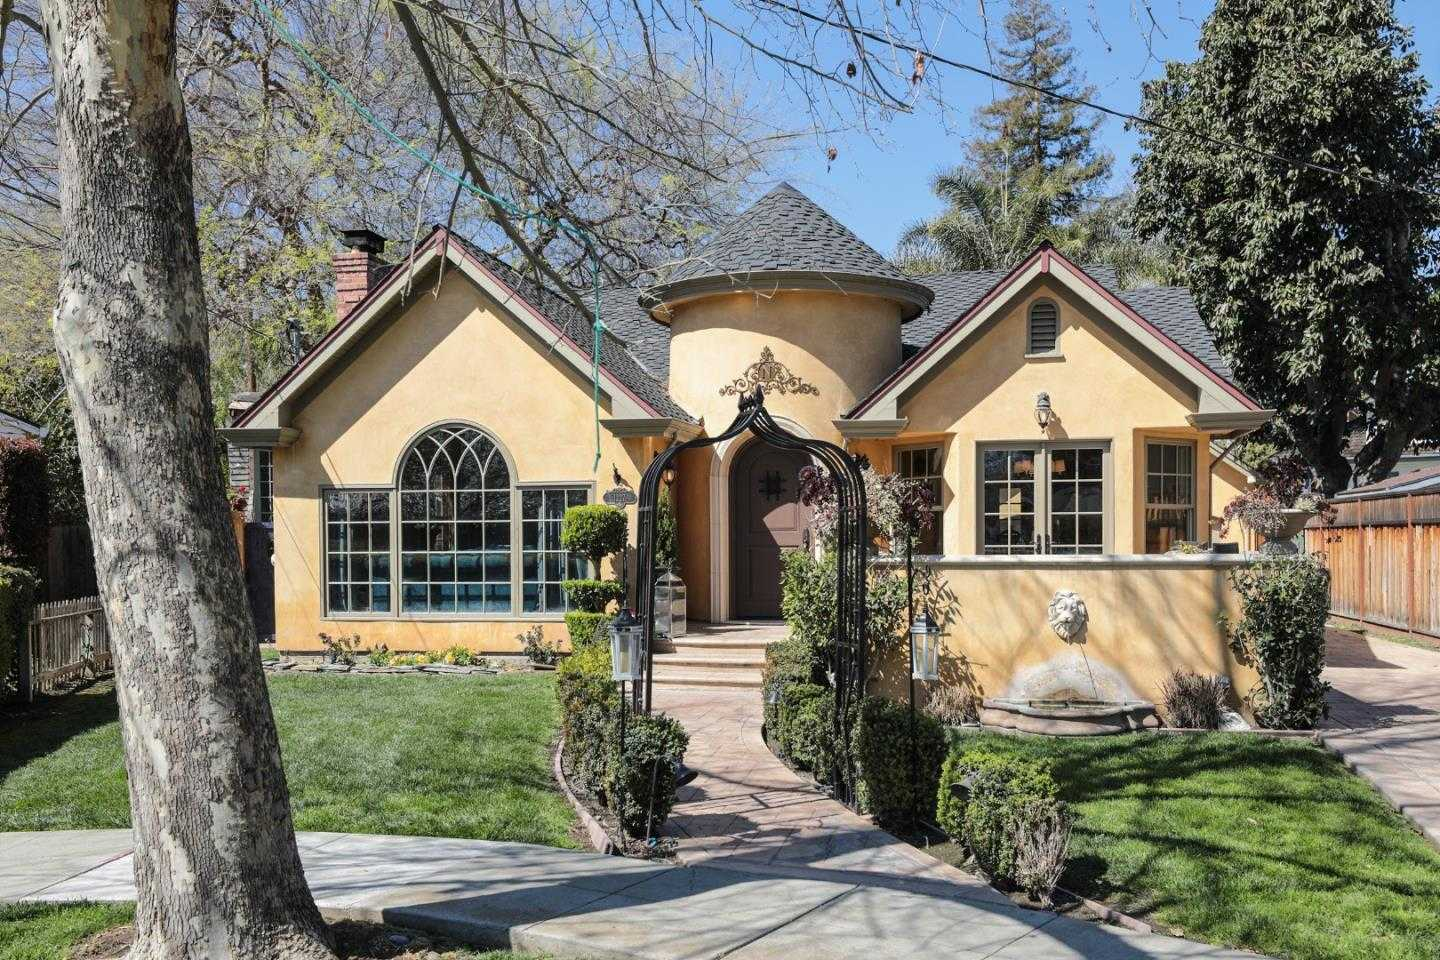 $1,925,000 - 3Br/2Ba -  for Sale in San Jose